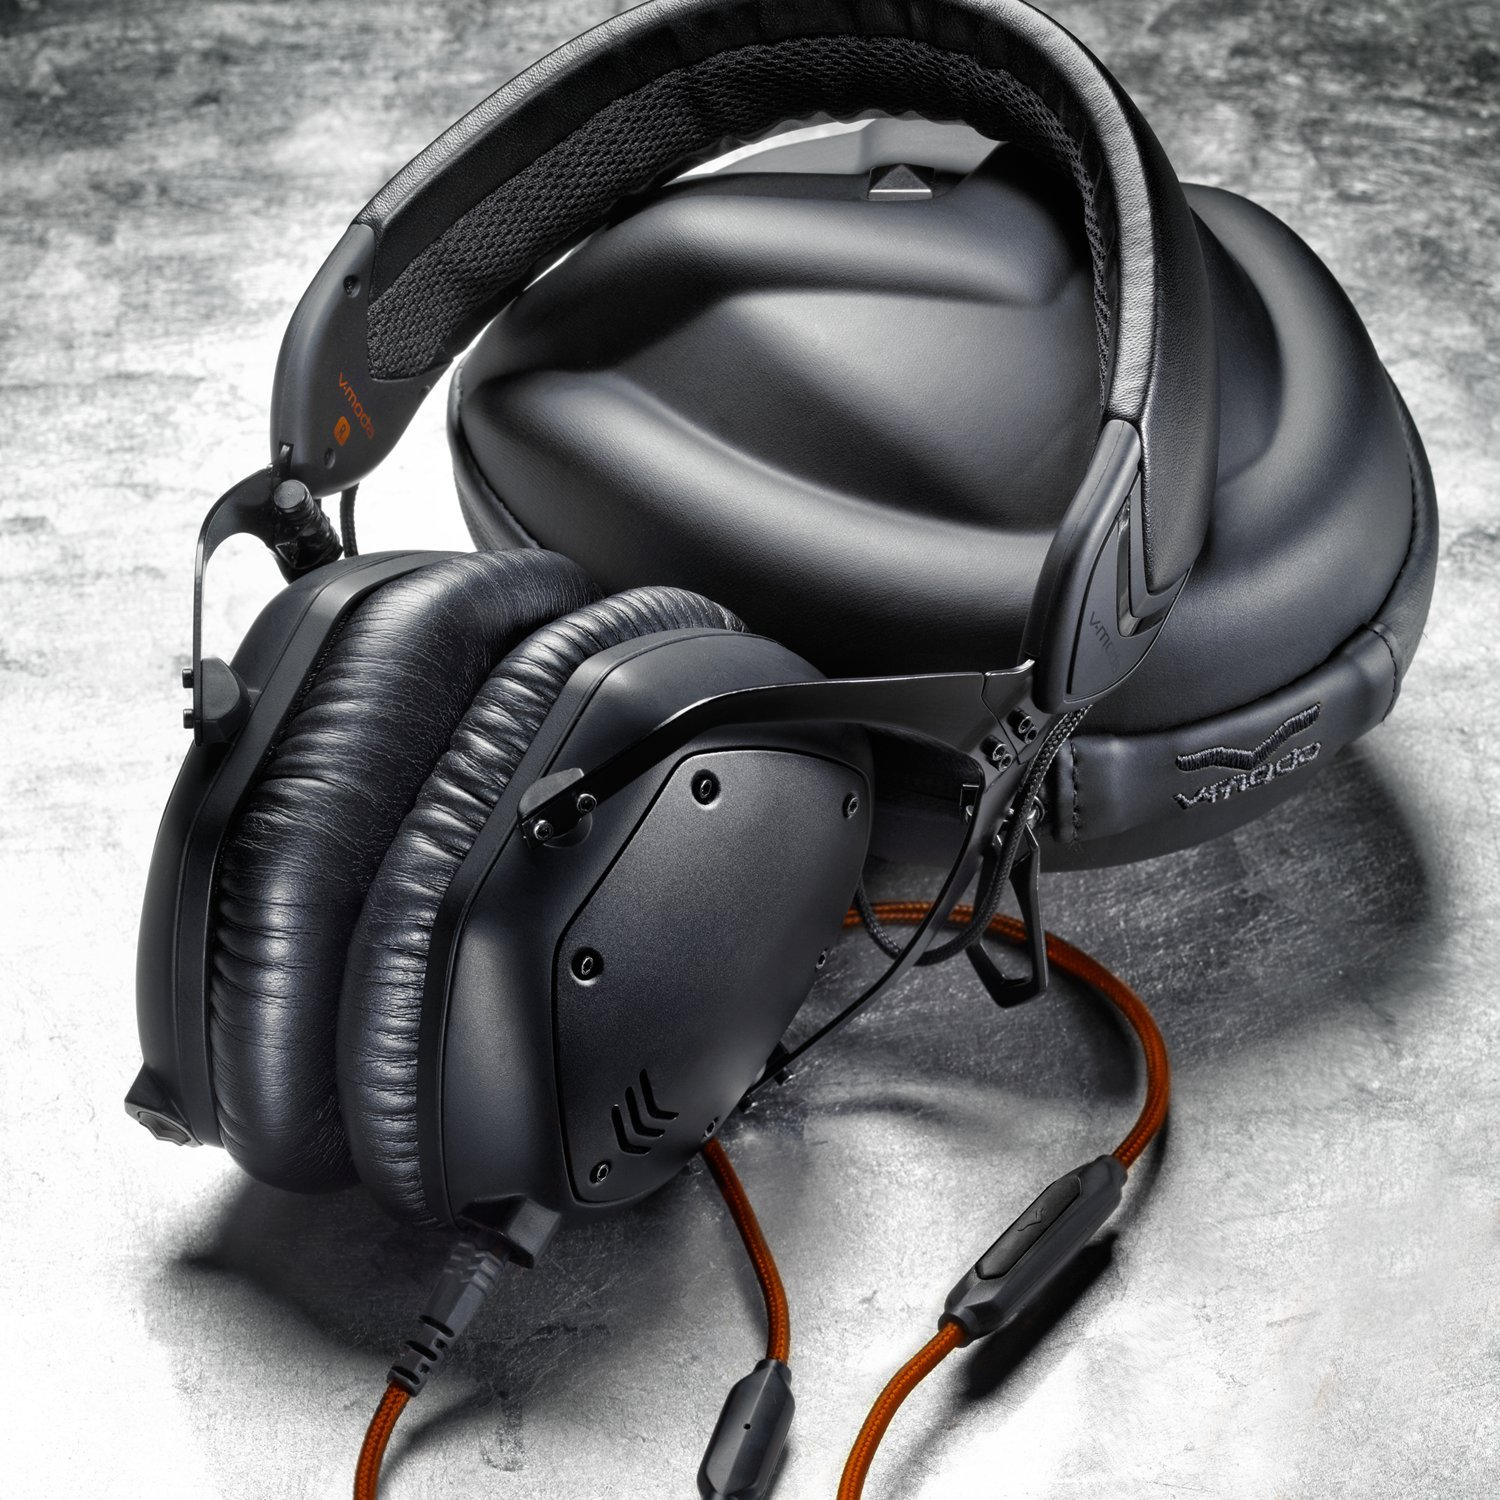 V-MODA Crossfade M-100 Black Friday Deals 2020